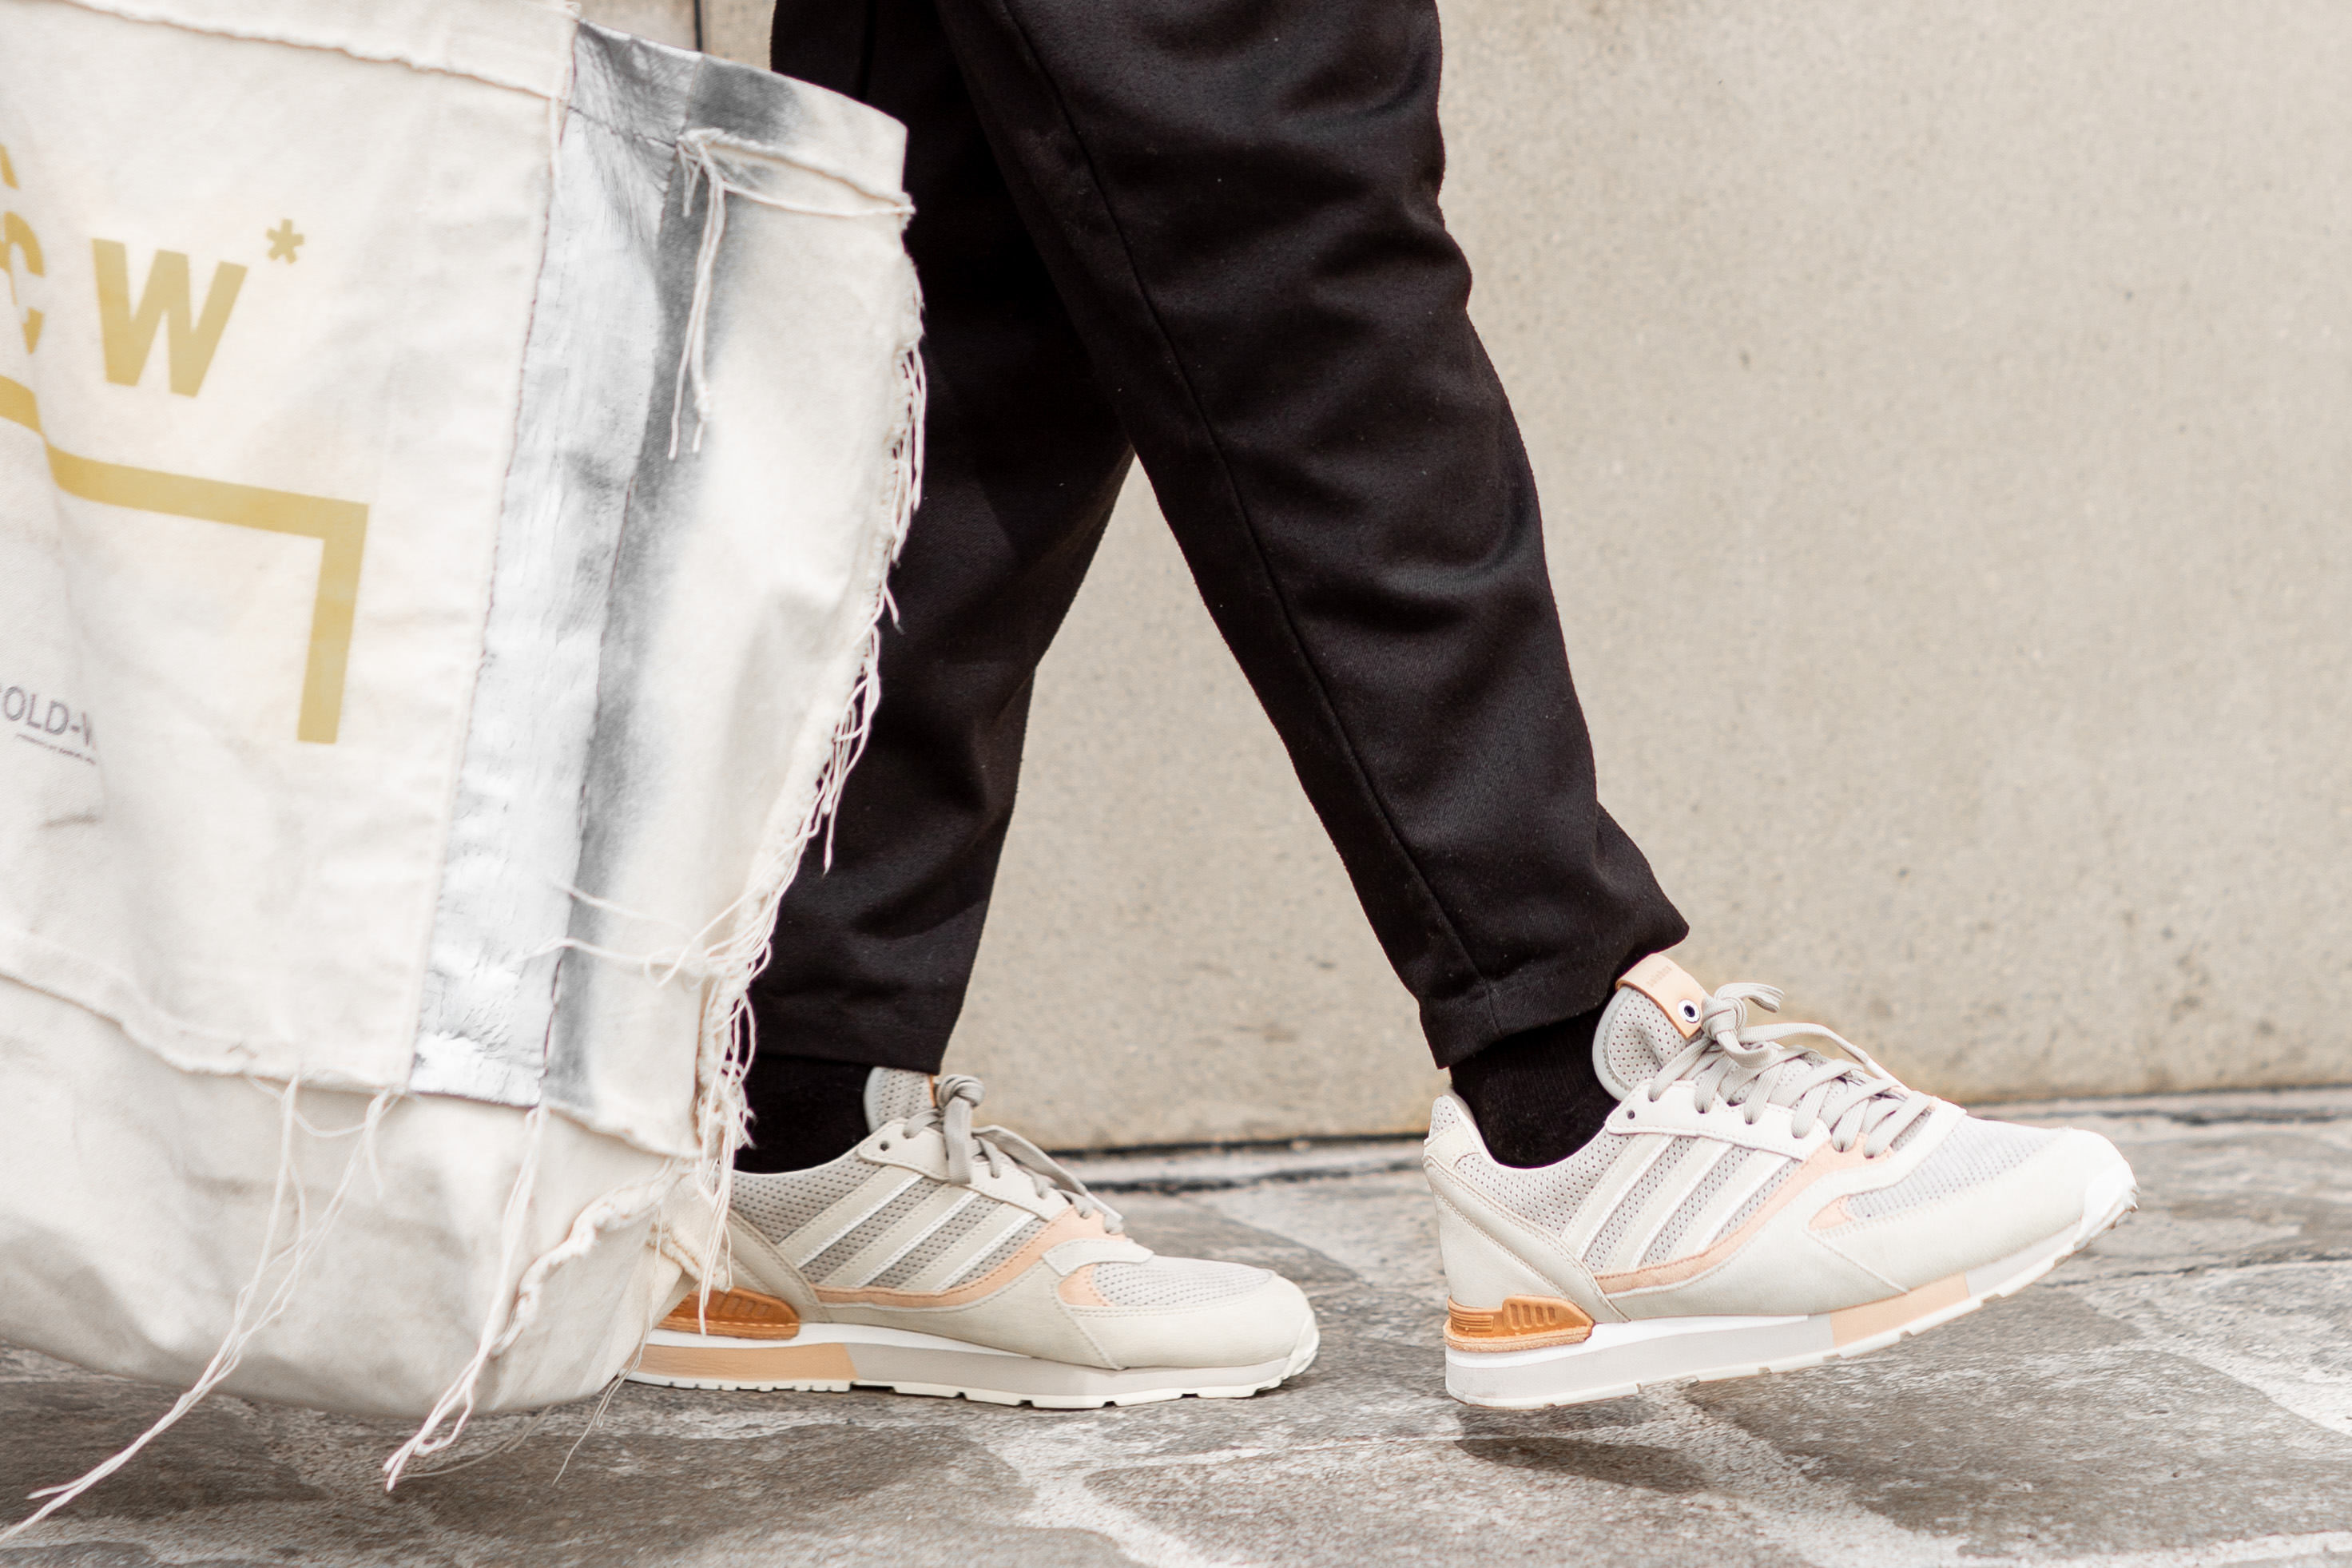 Street Style: Jean-Claude Mpassy from New Kiss on the Blog wearing Adidas X Solebox Sneakers